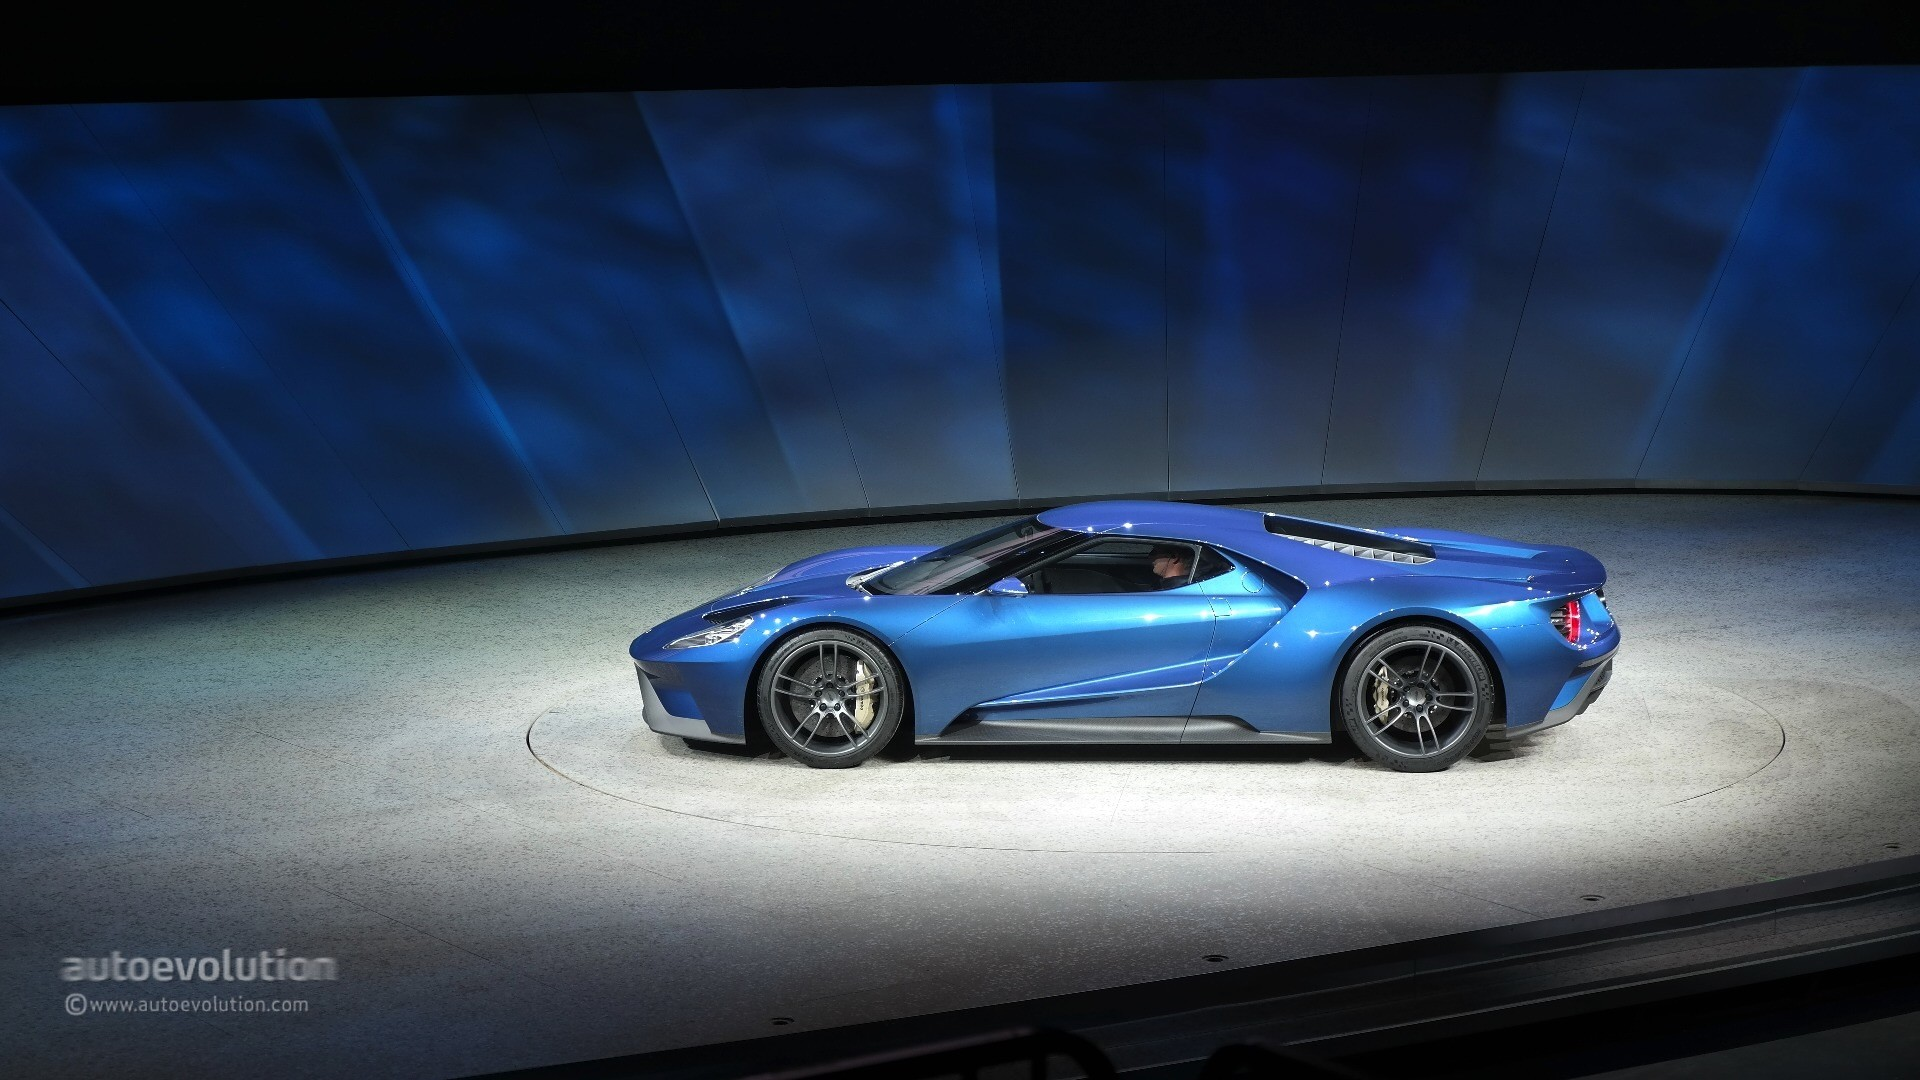 2017 Ford Gt Supercar Teased In Forza Motorsport 6 Trailer